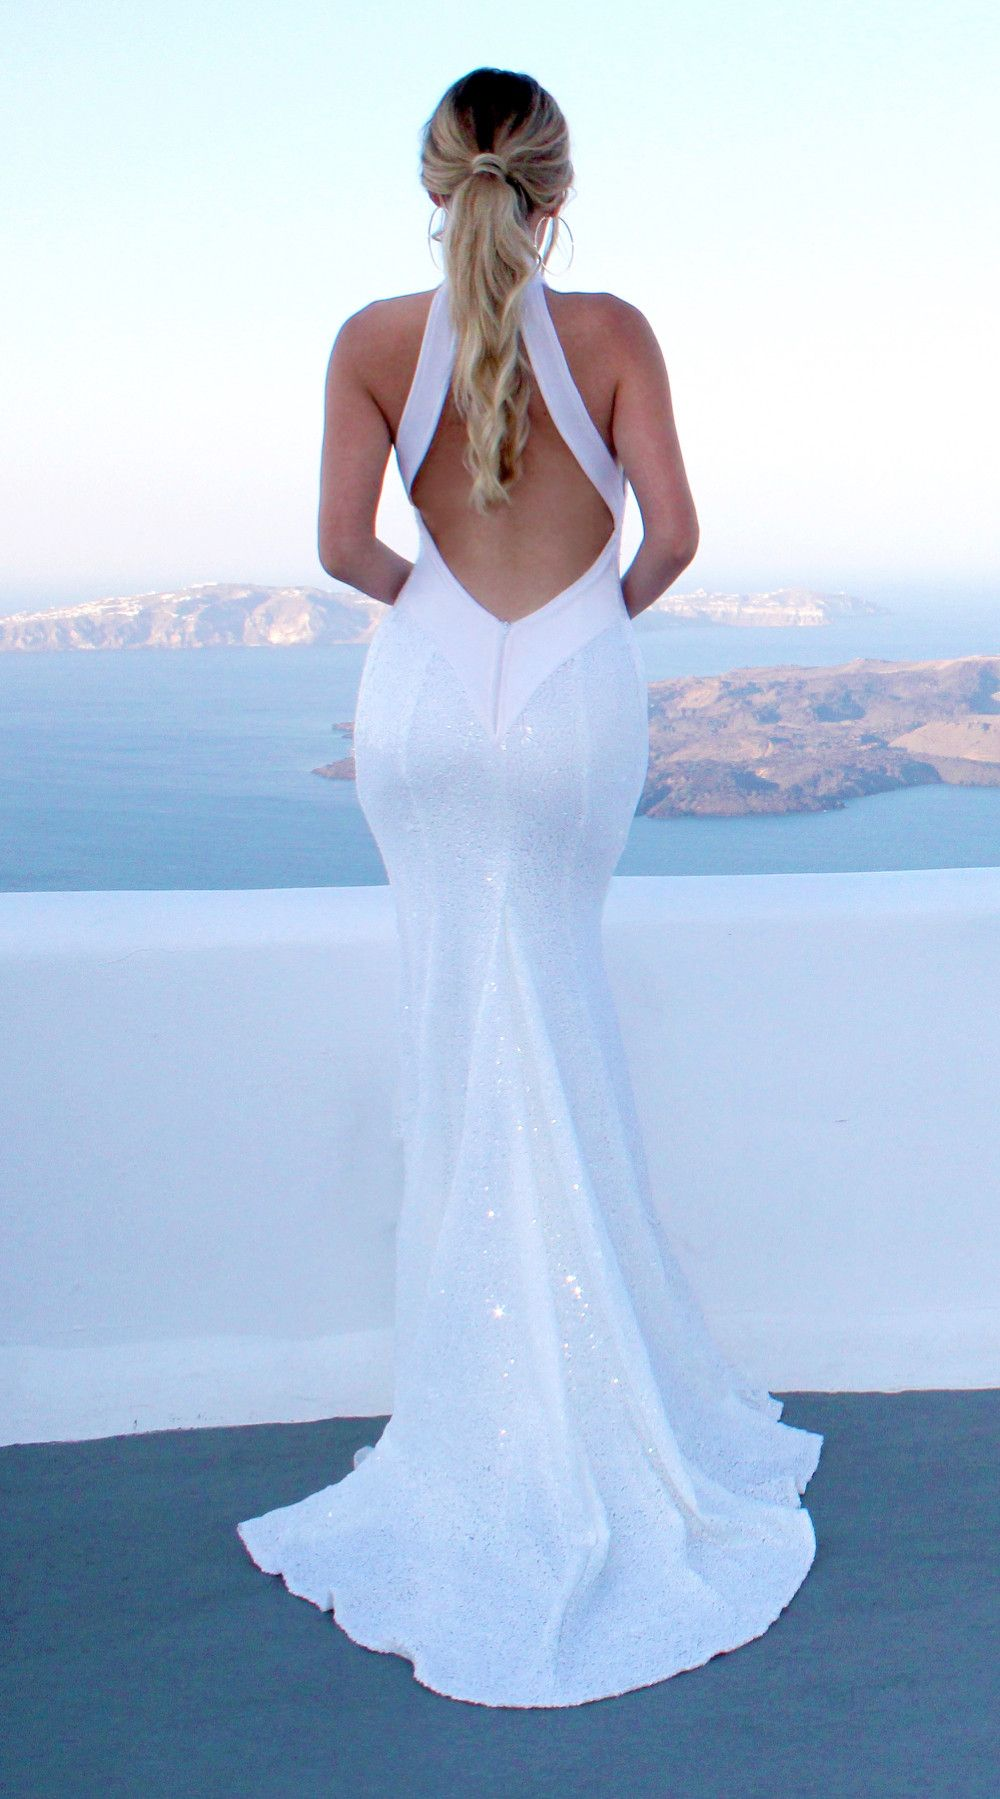 Backless bra for wedding dress  WHITE CHLOE EVENING DRESS BY STUDIO MINC backless sequin  Viaje